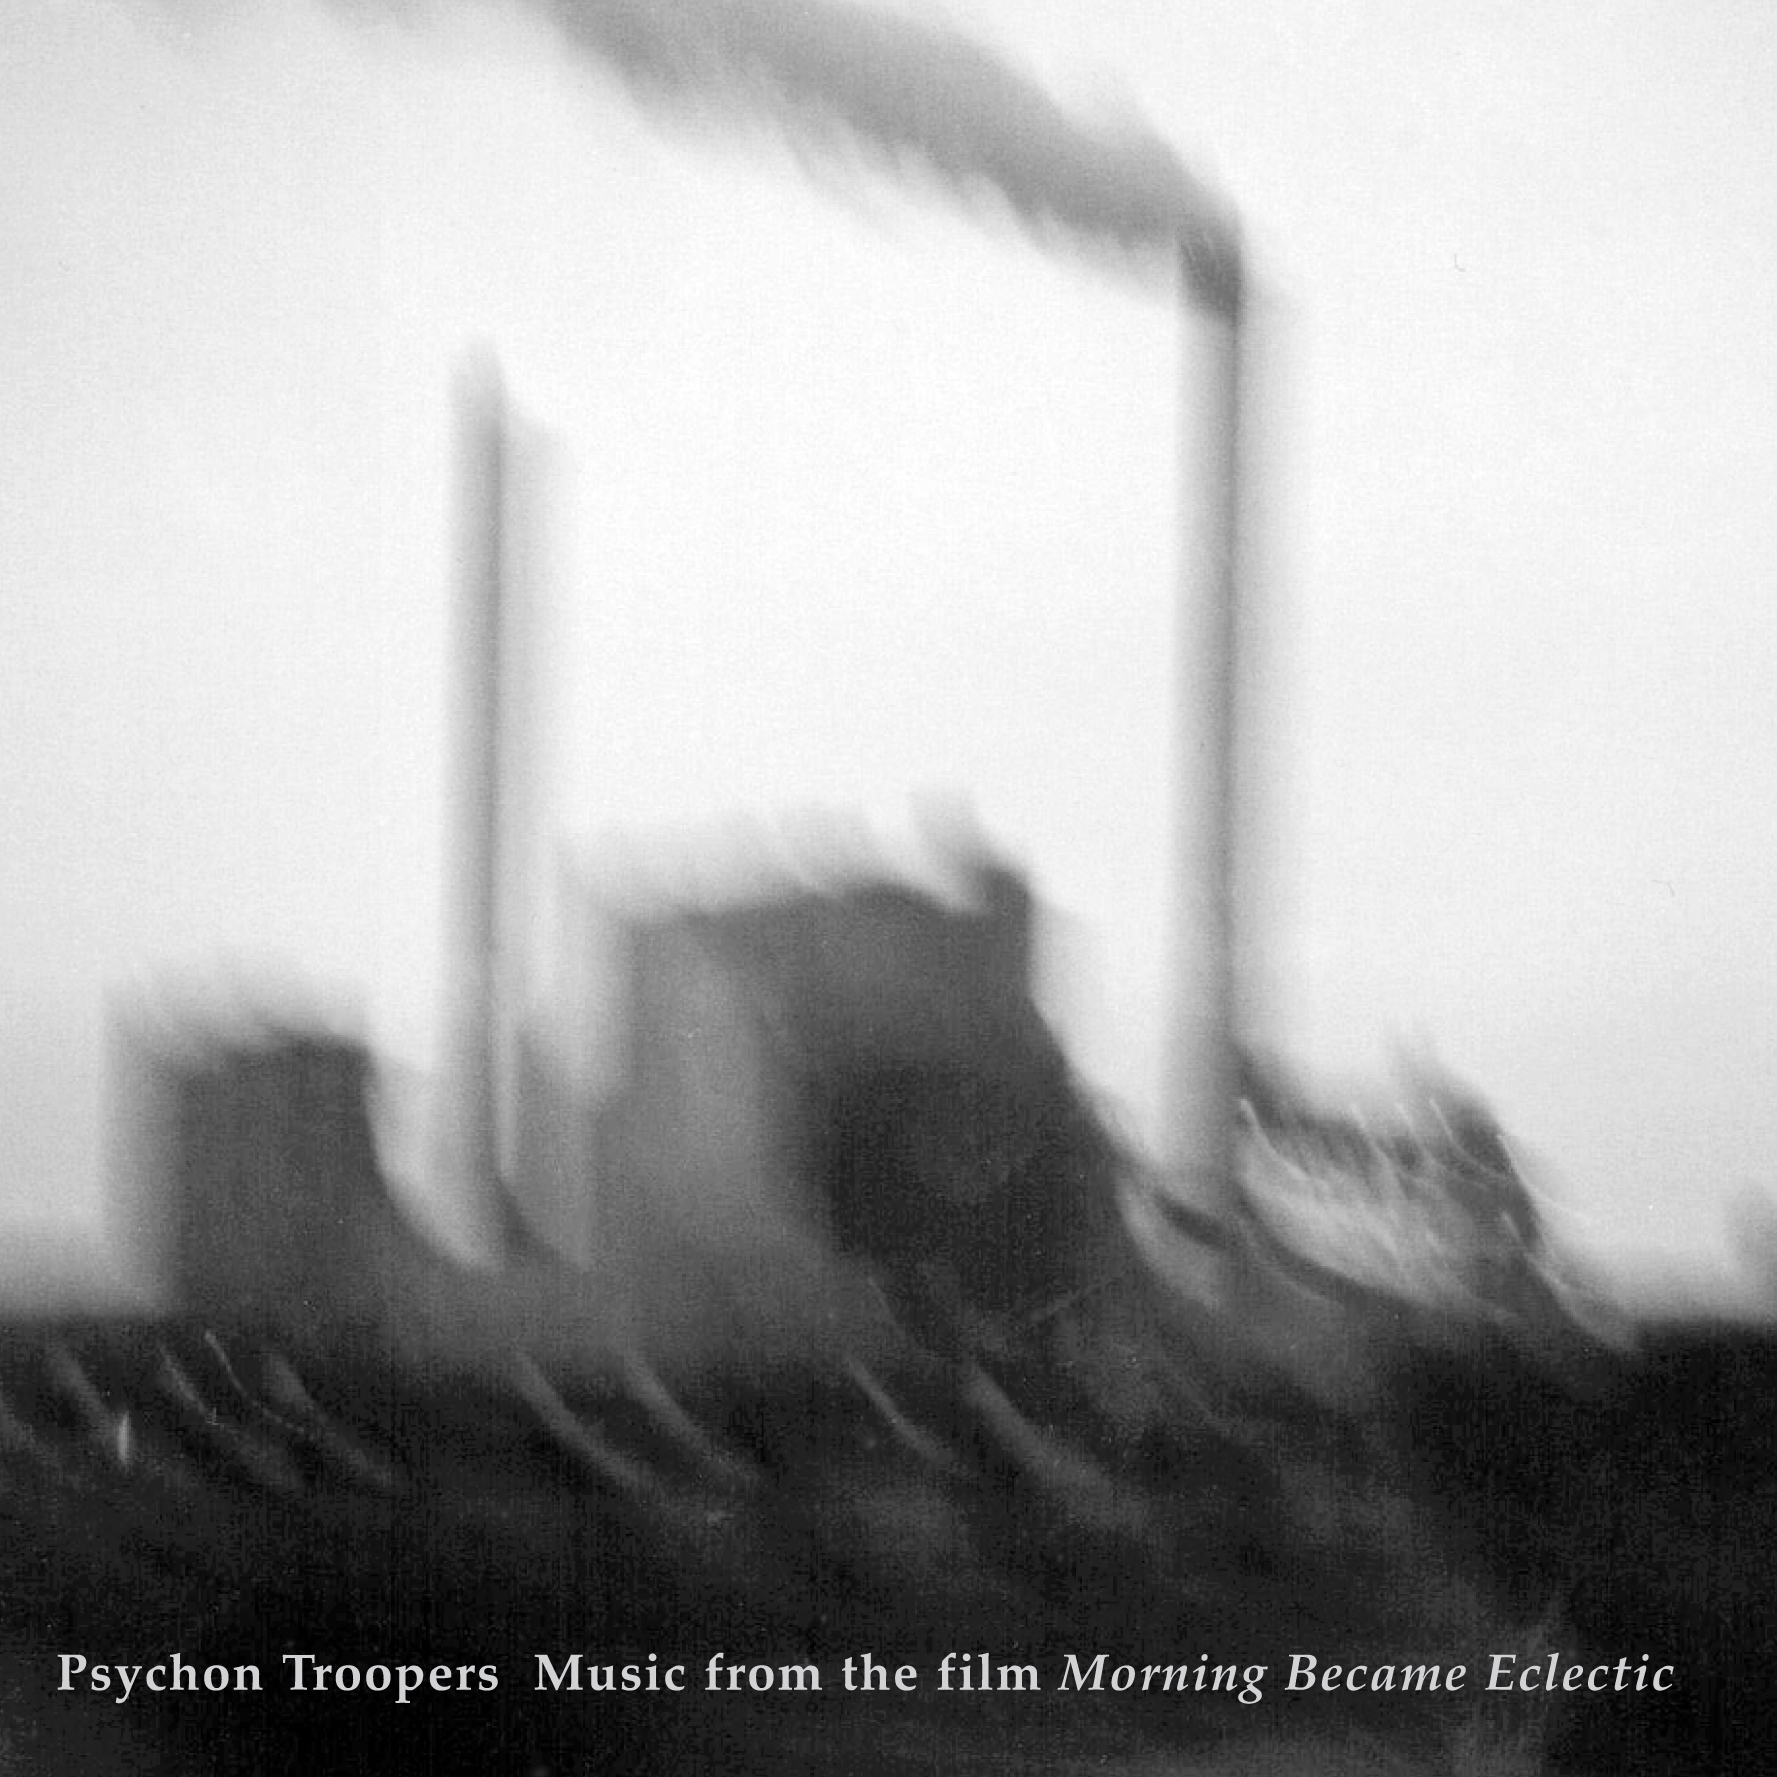 NM004: psychon troopers - music from the film morning became eclectic